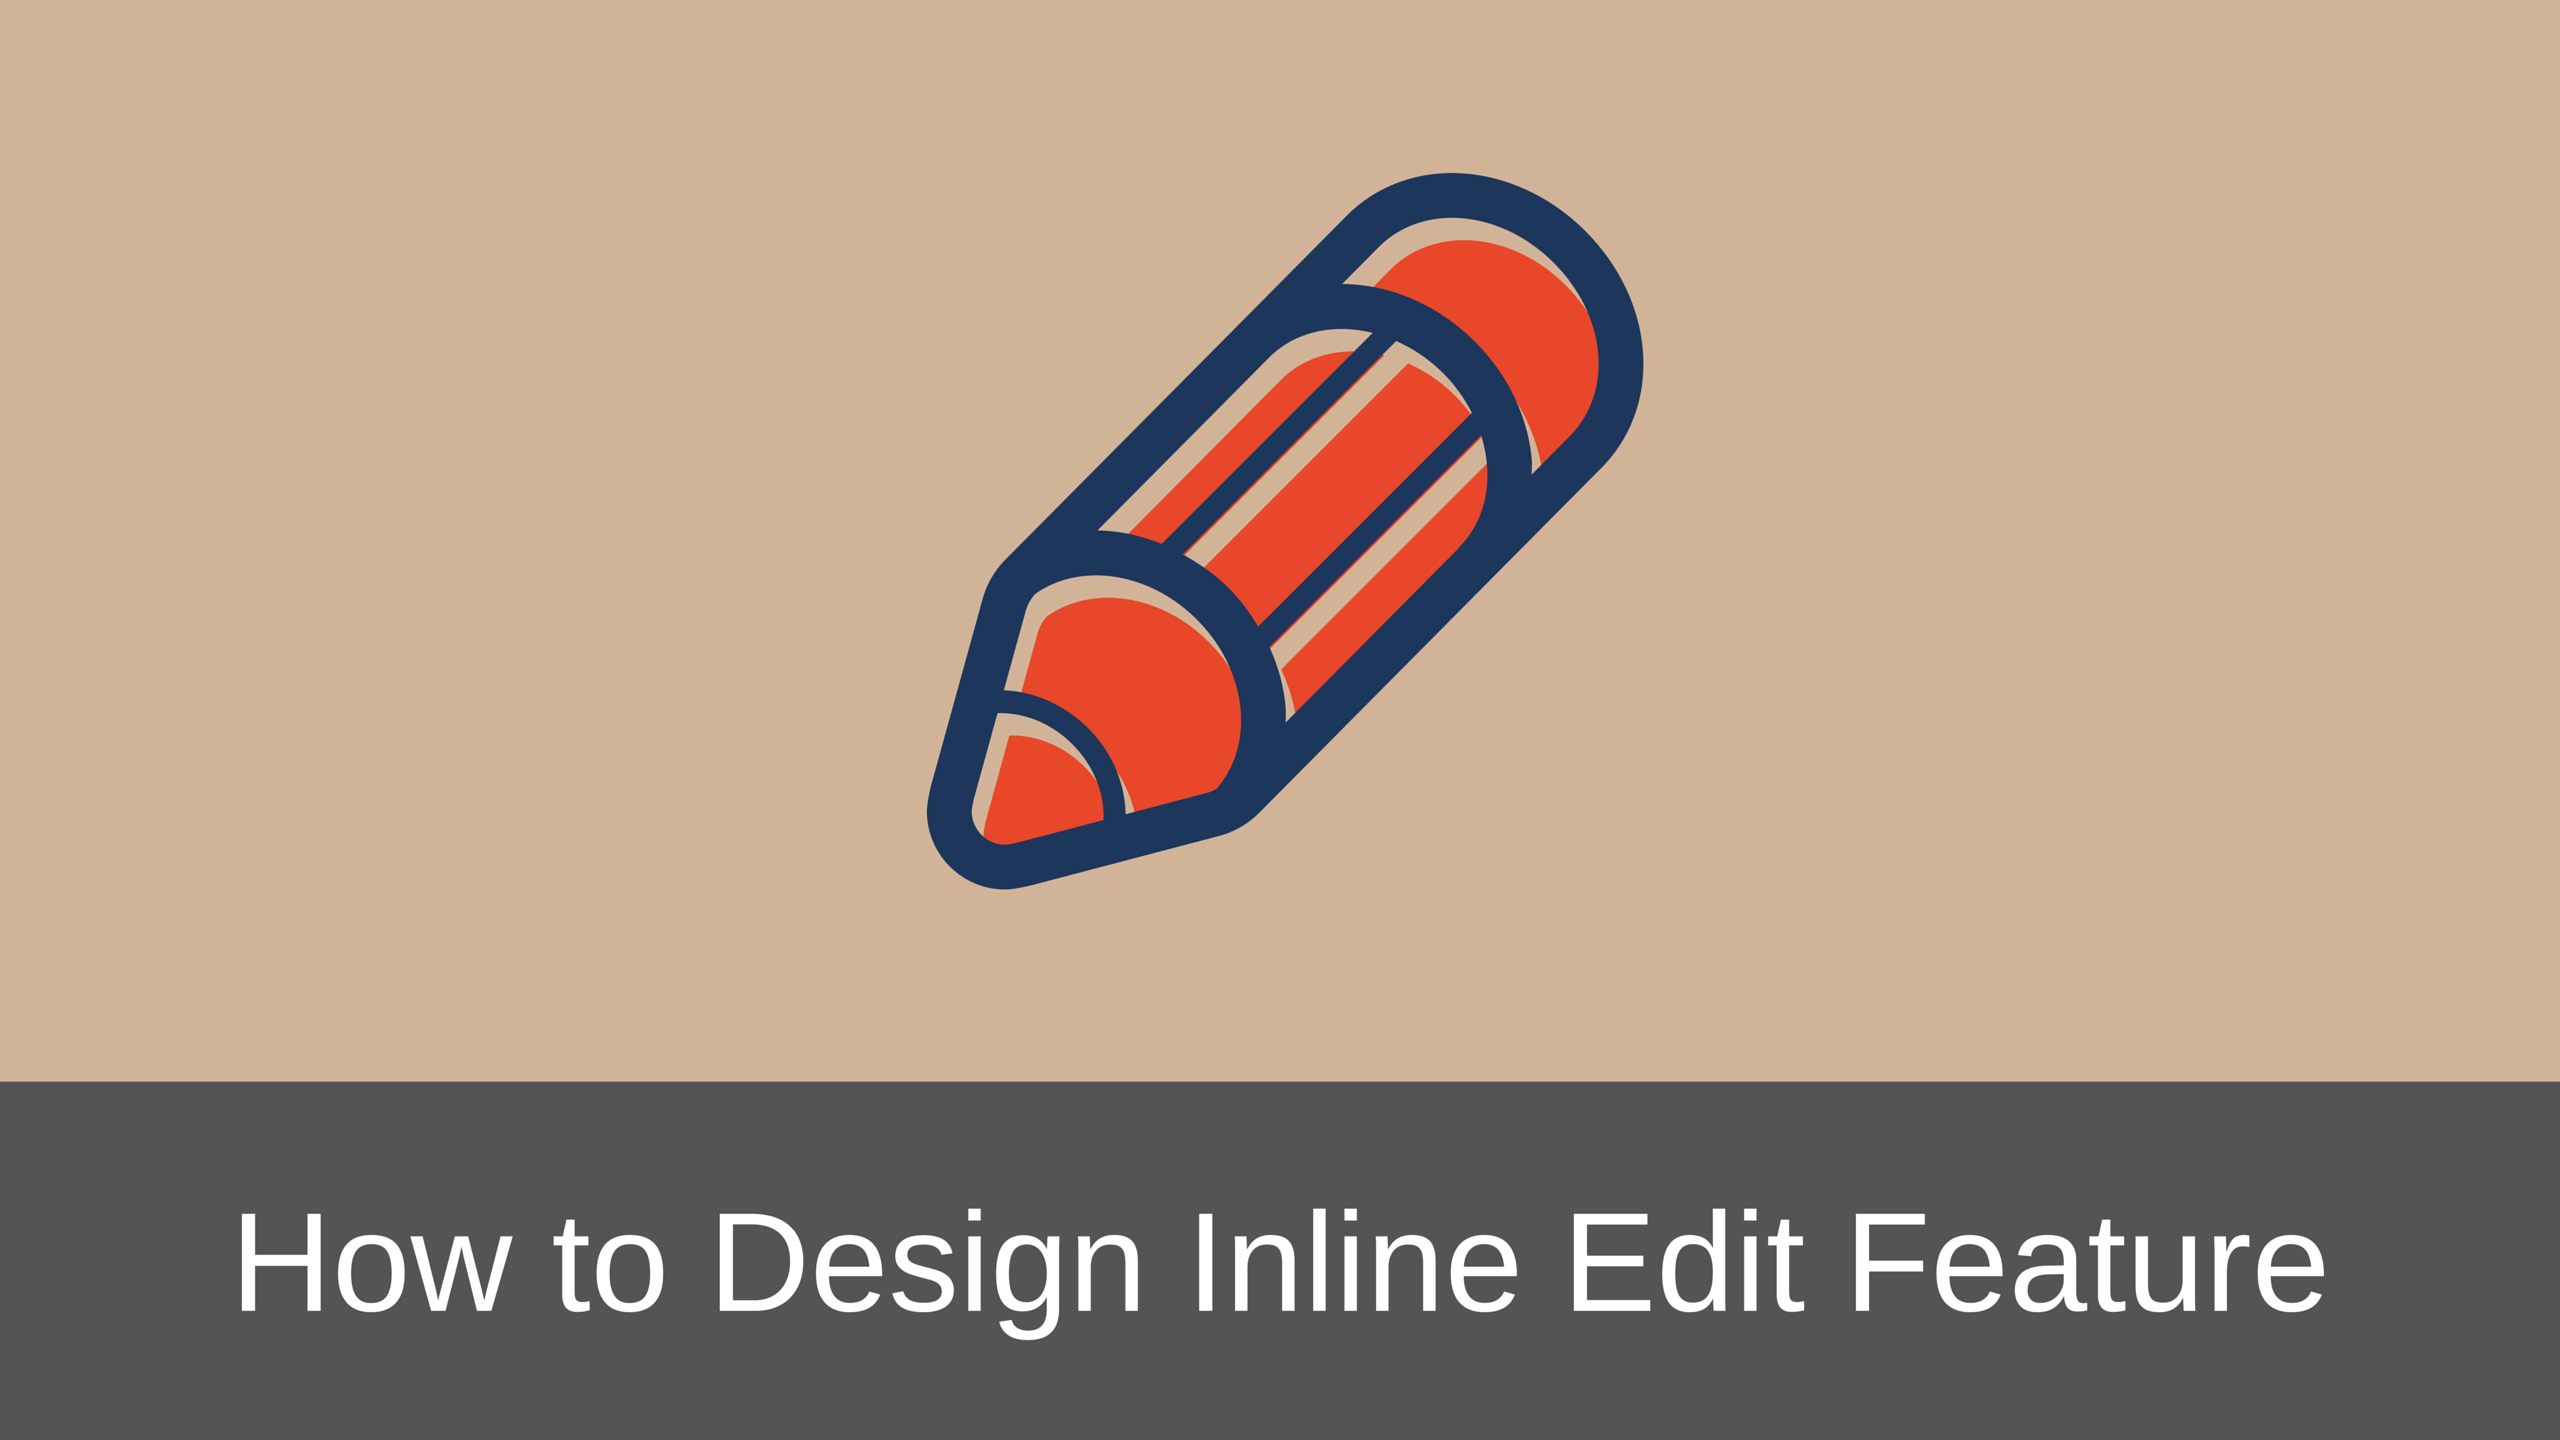 Design In Line : How to properly design inline edit feature in web applications